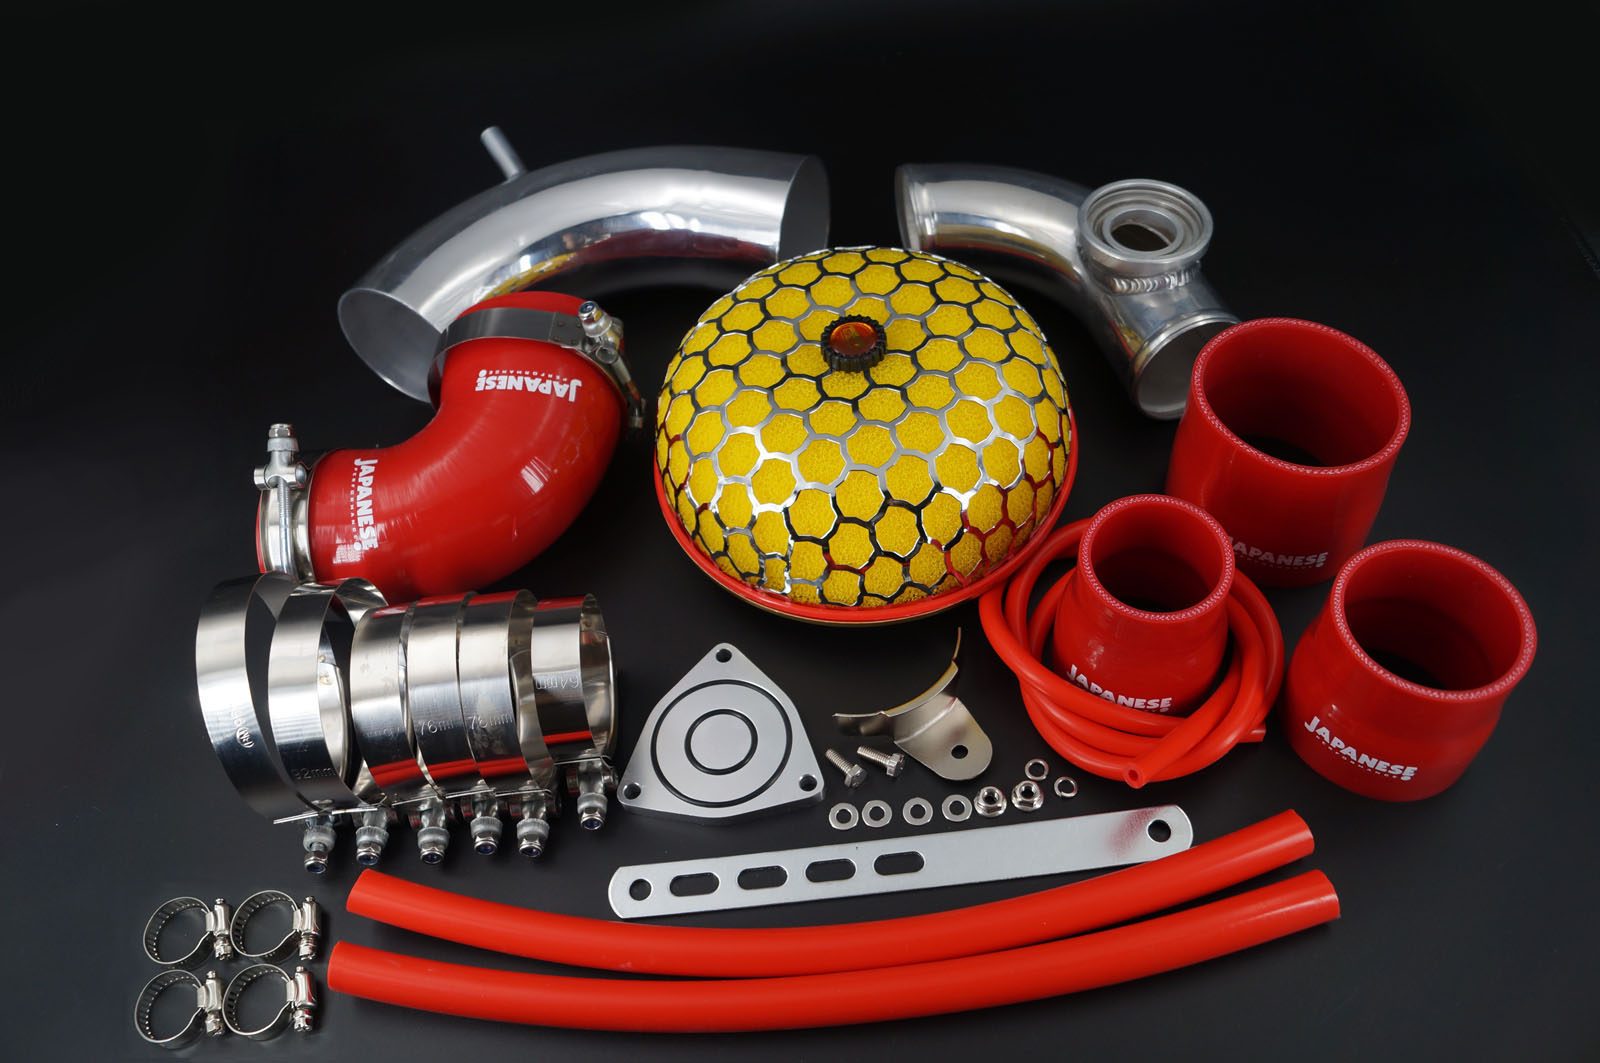 NEW SSQV/SQV/ BLOW OFF VALVE /BOV Turbo Pipe + Air Intake Pipe Kit FOR HYUNDAI GENESIS COUPE 2.0T